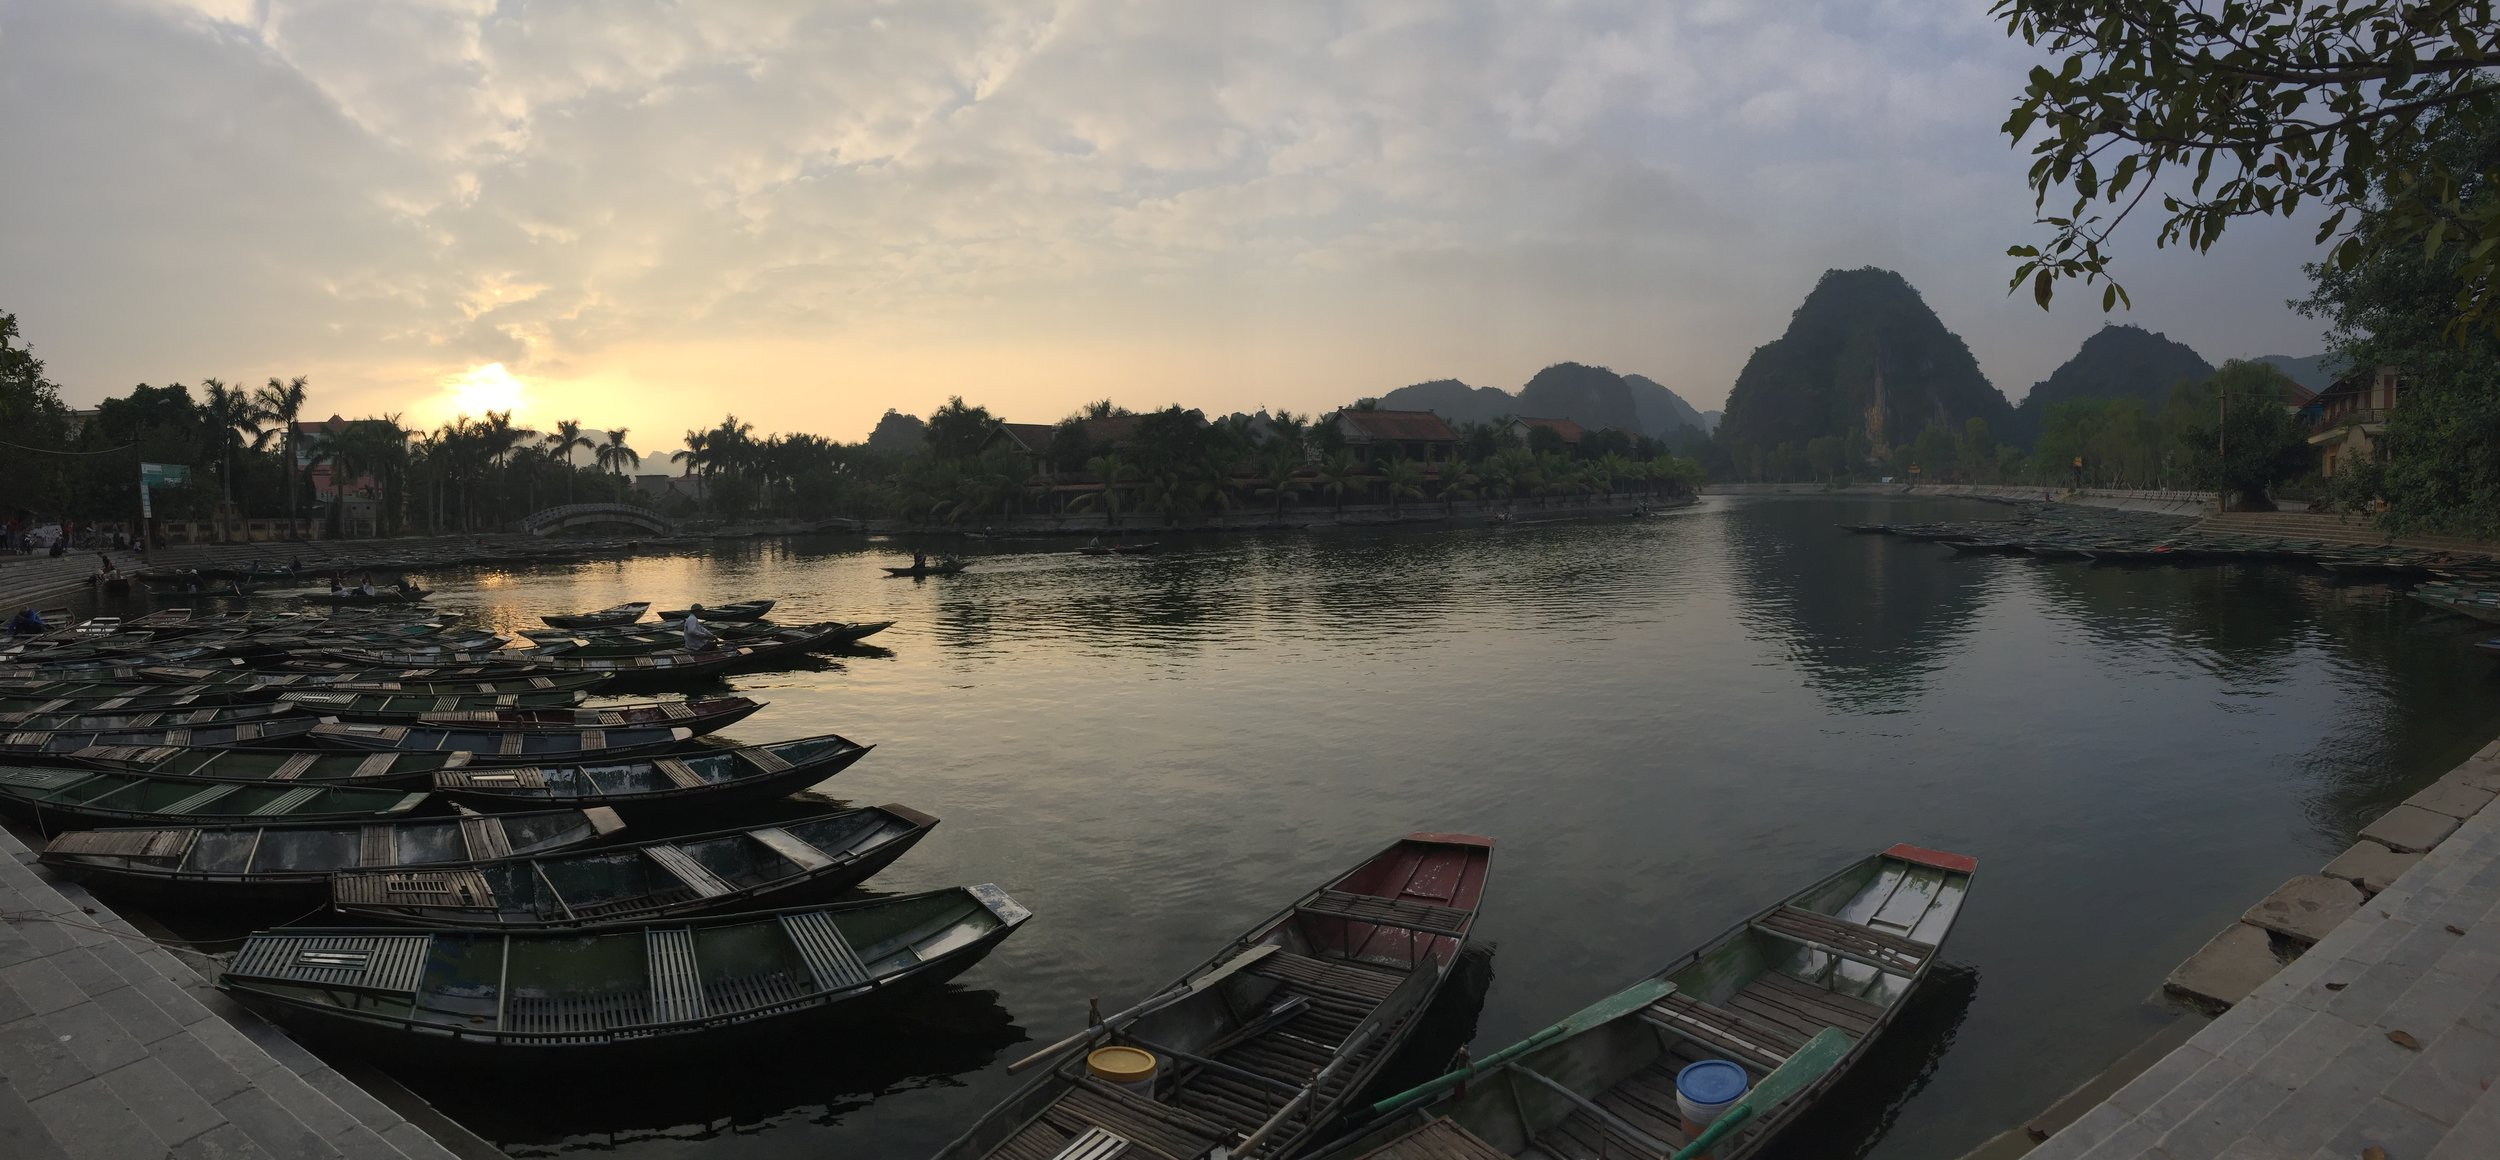 Sunset over Tam Coc lake by Ninh Binh.